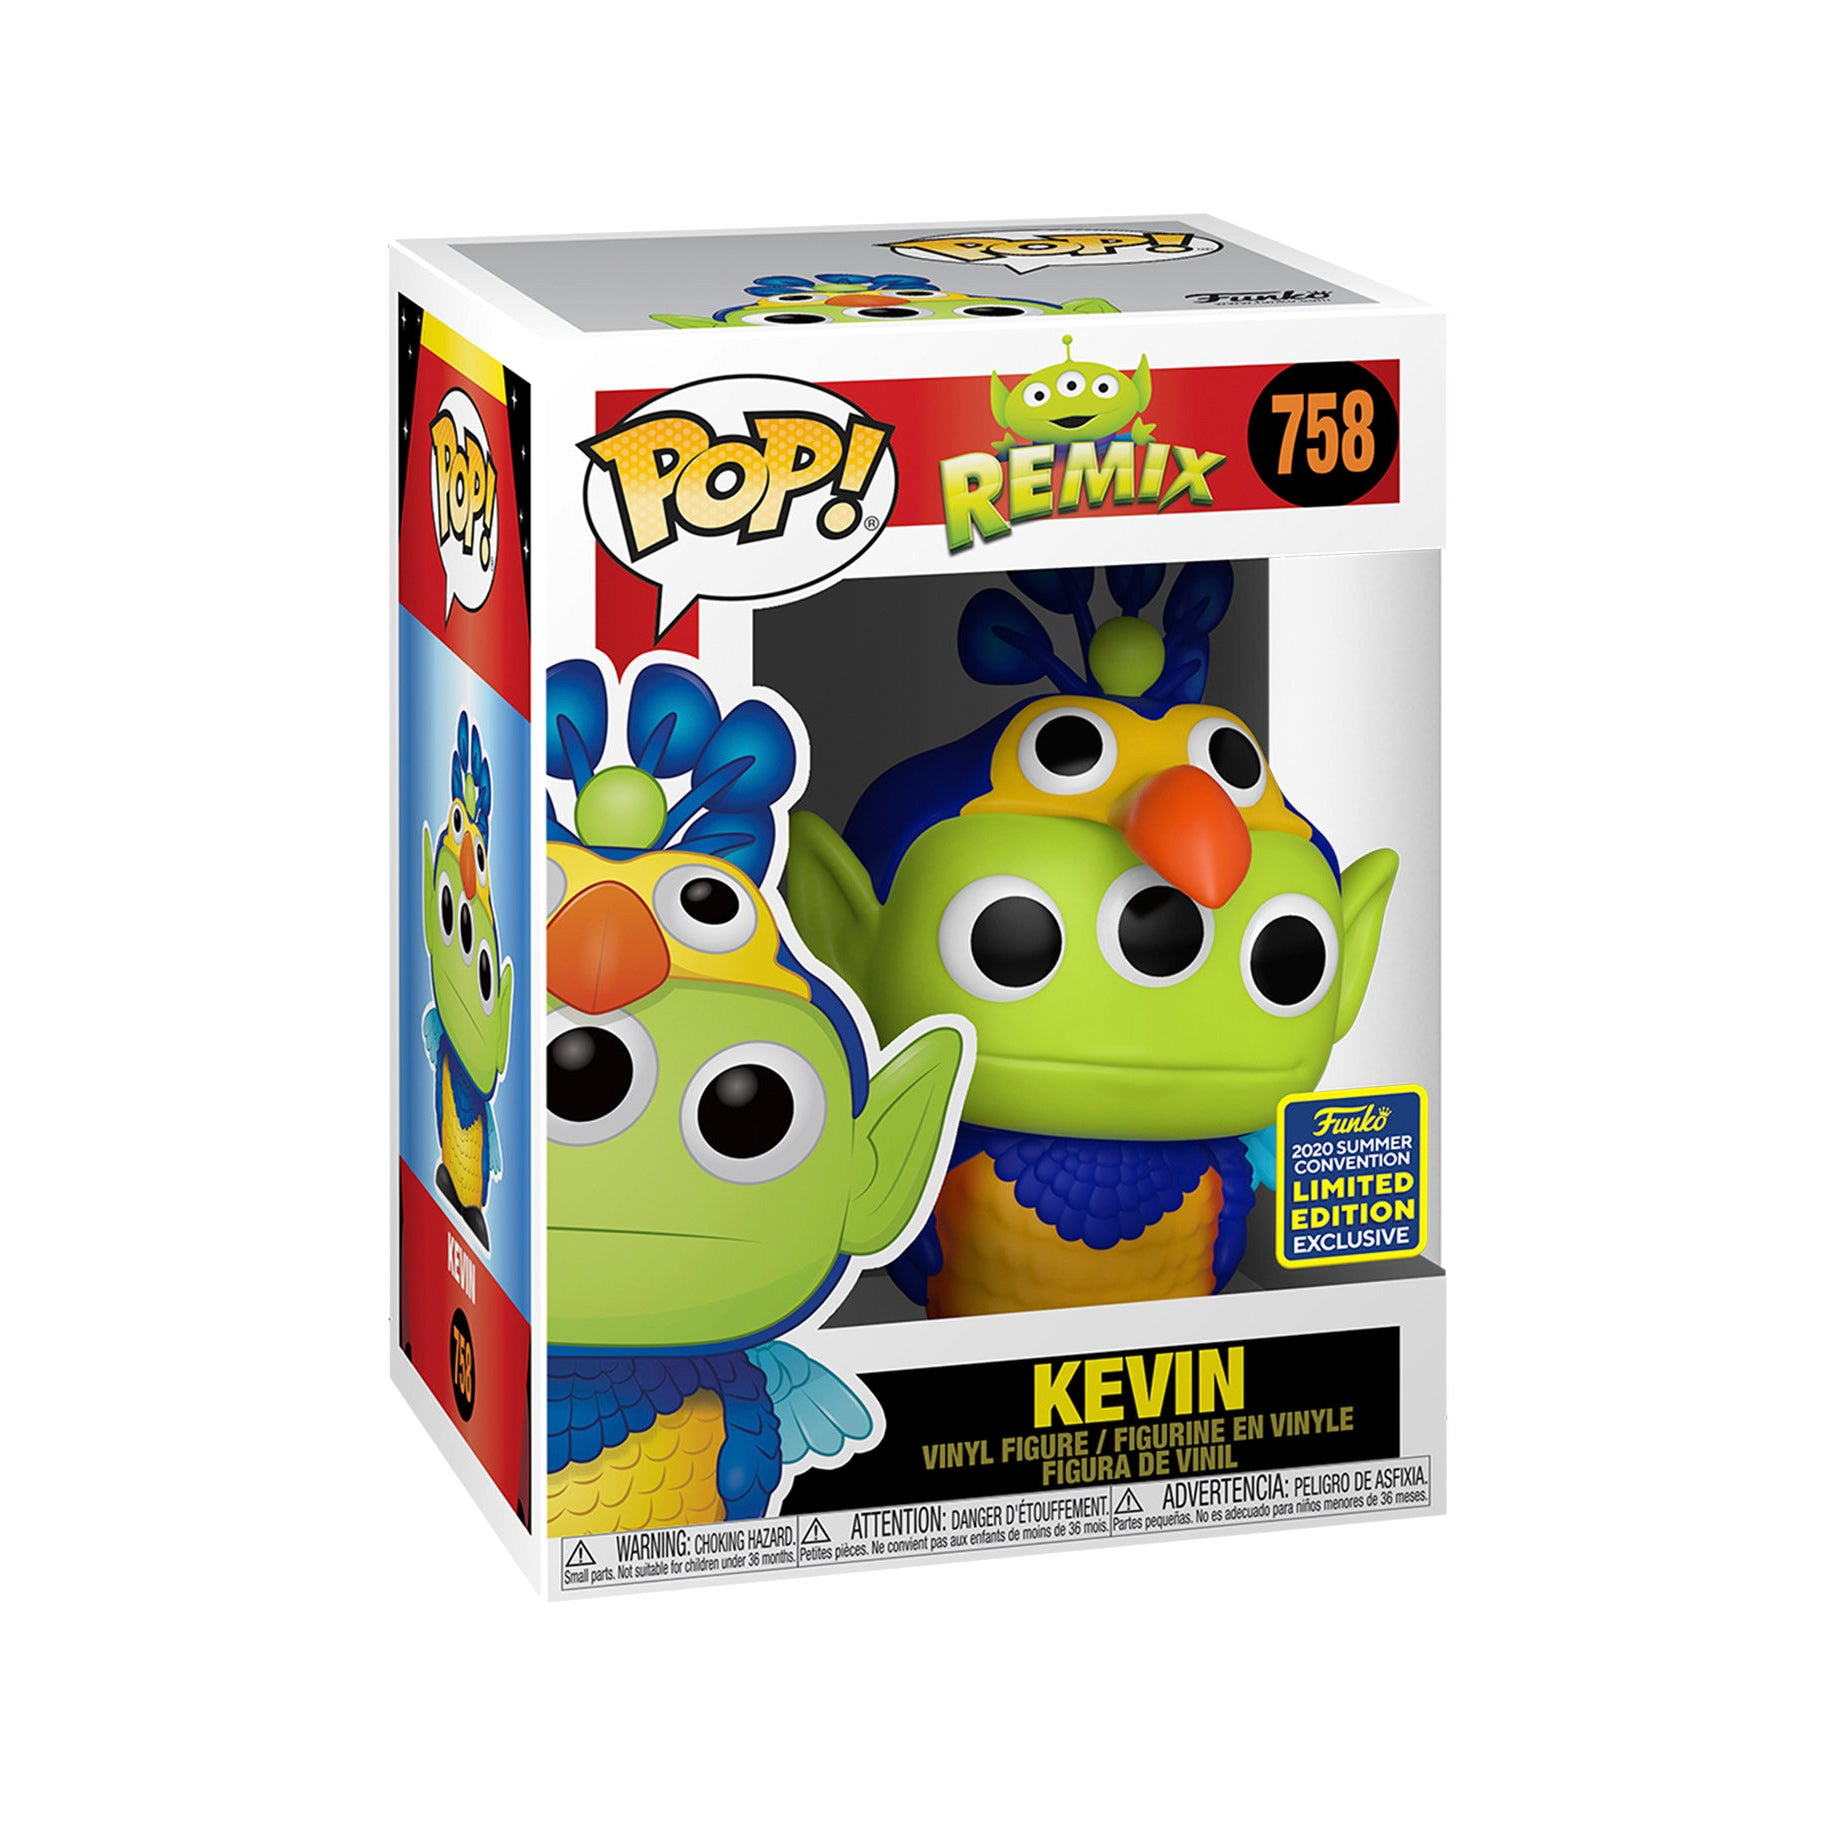 Pixar 25th Anniversary Alien Remix Kevin Summer Convention Exclusive